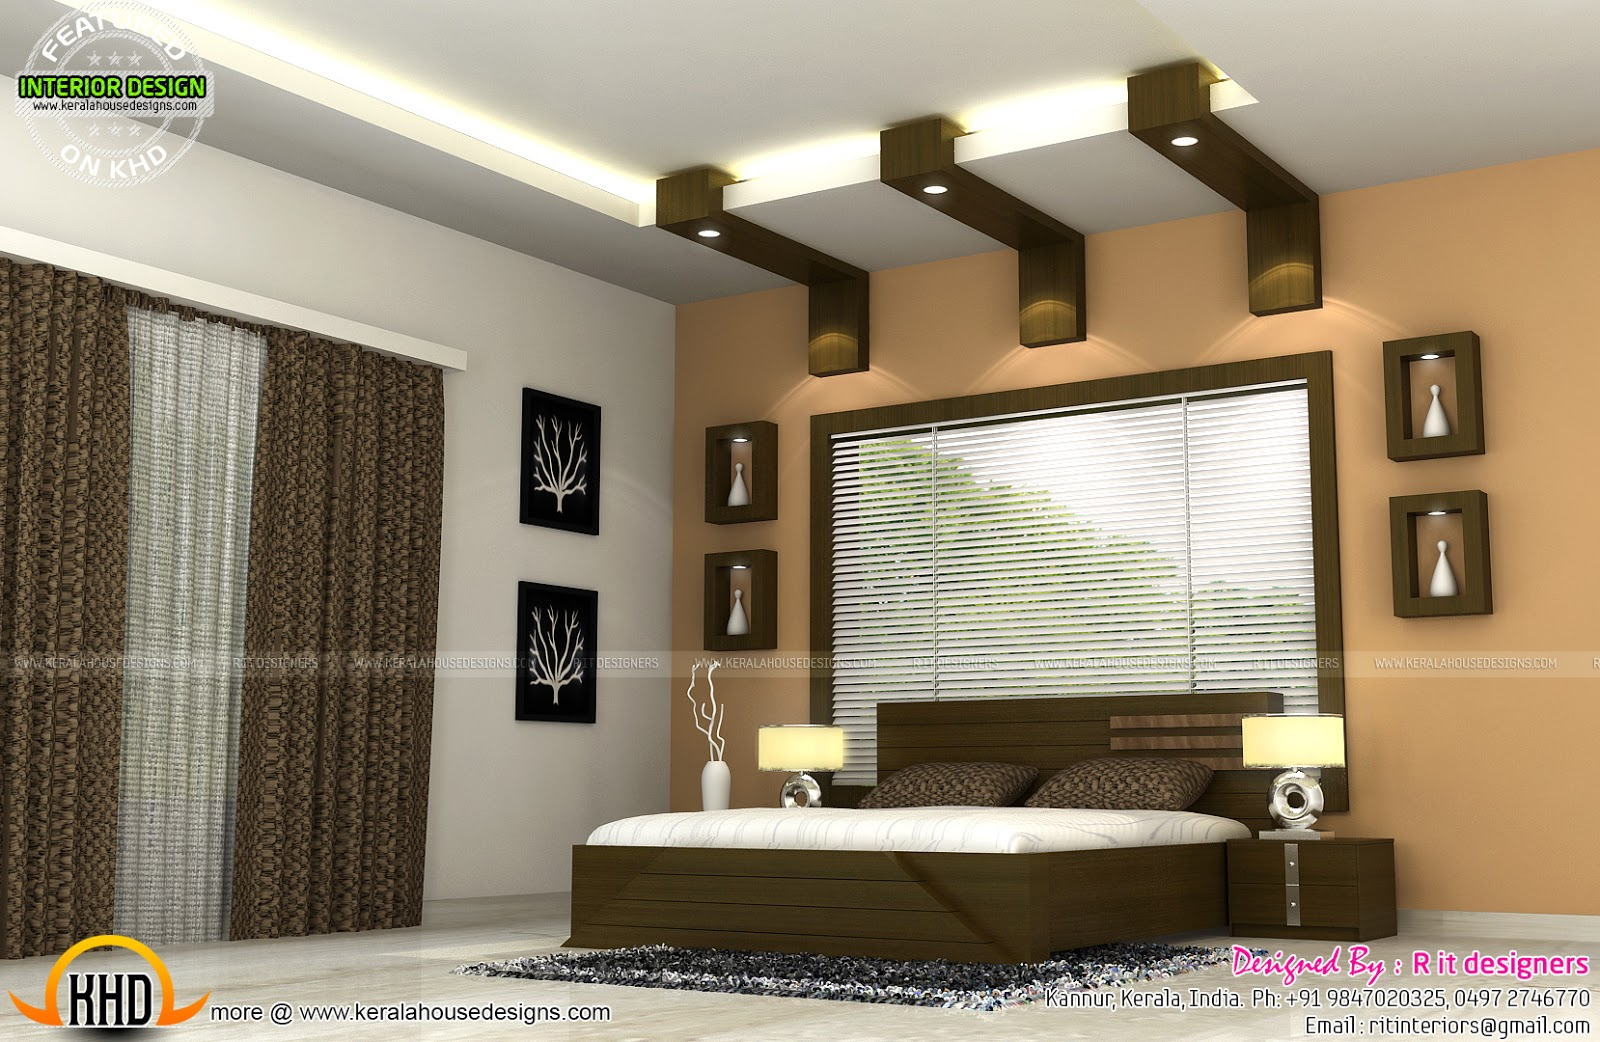 interiors of bedrooms and kitchen kerala home design and floor plans. Black Bedroom Furniture Sets. Home Design Ideas